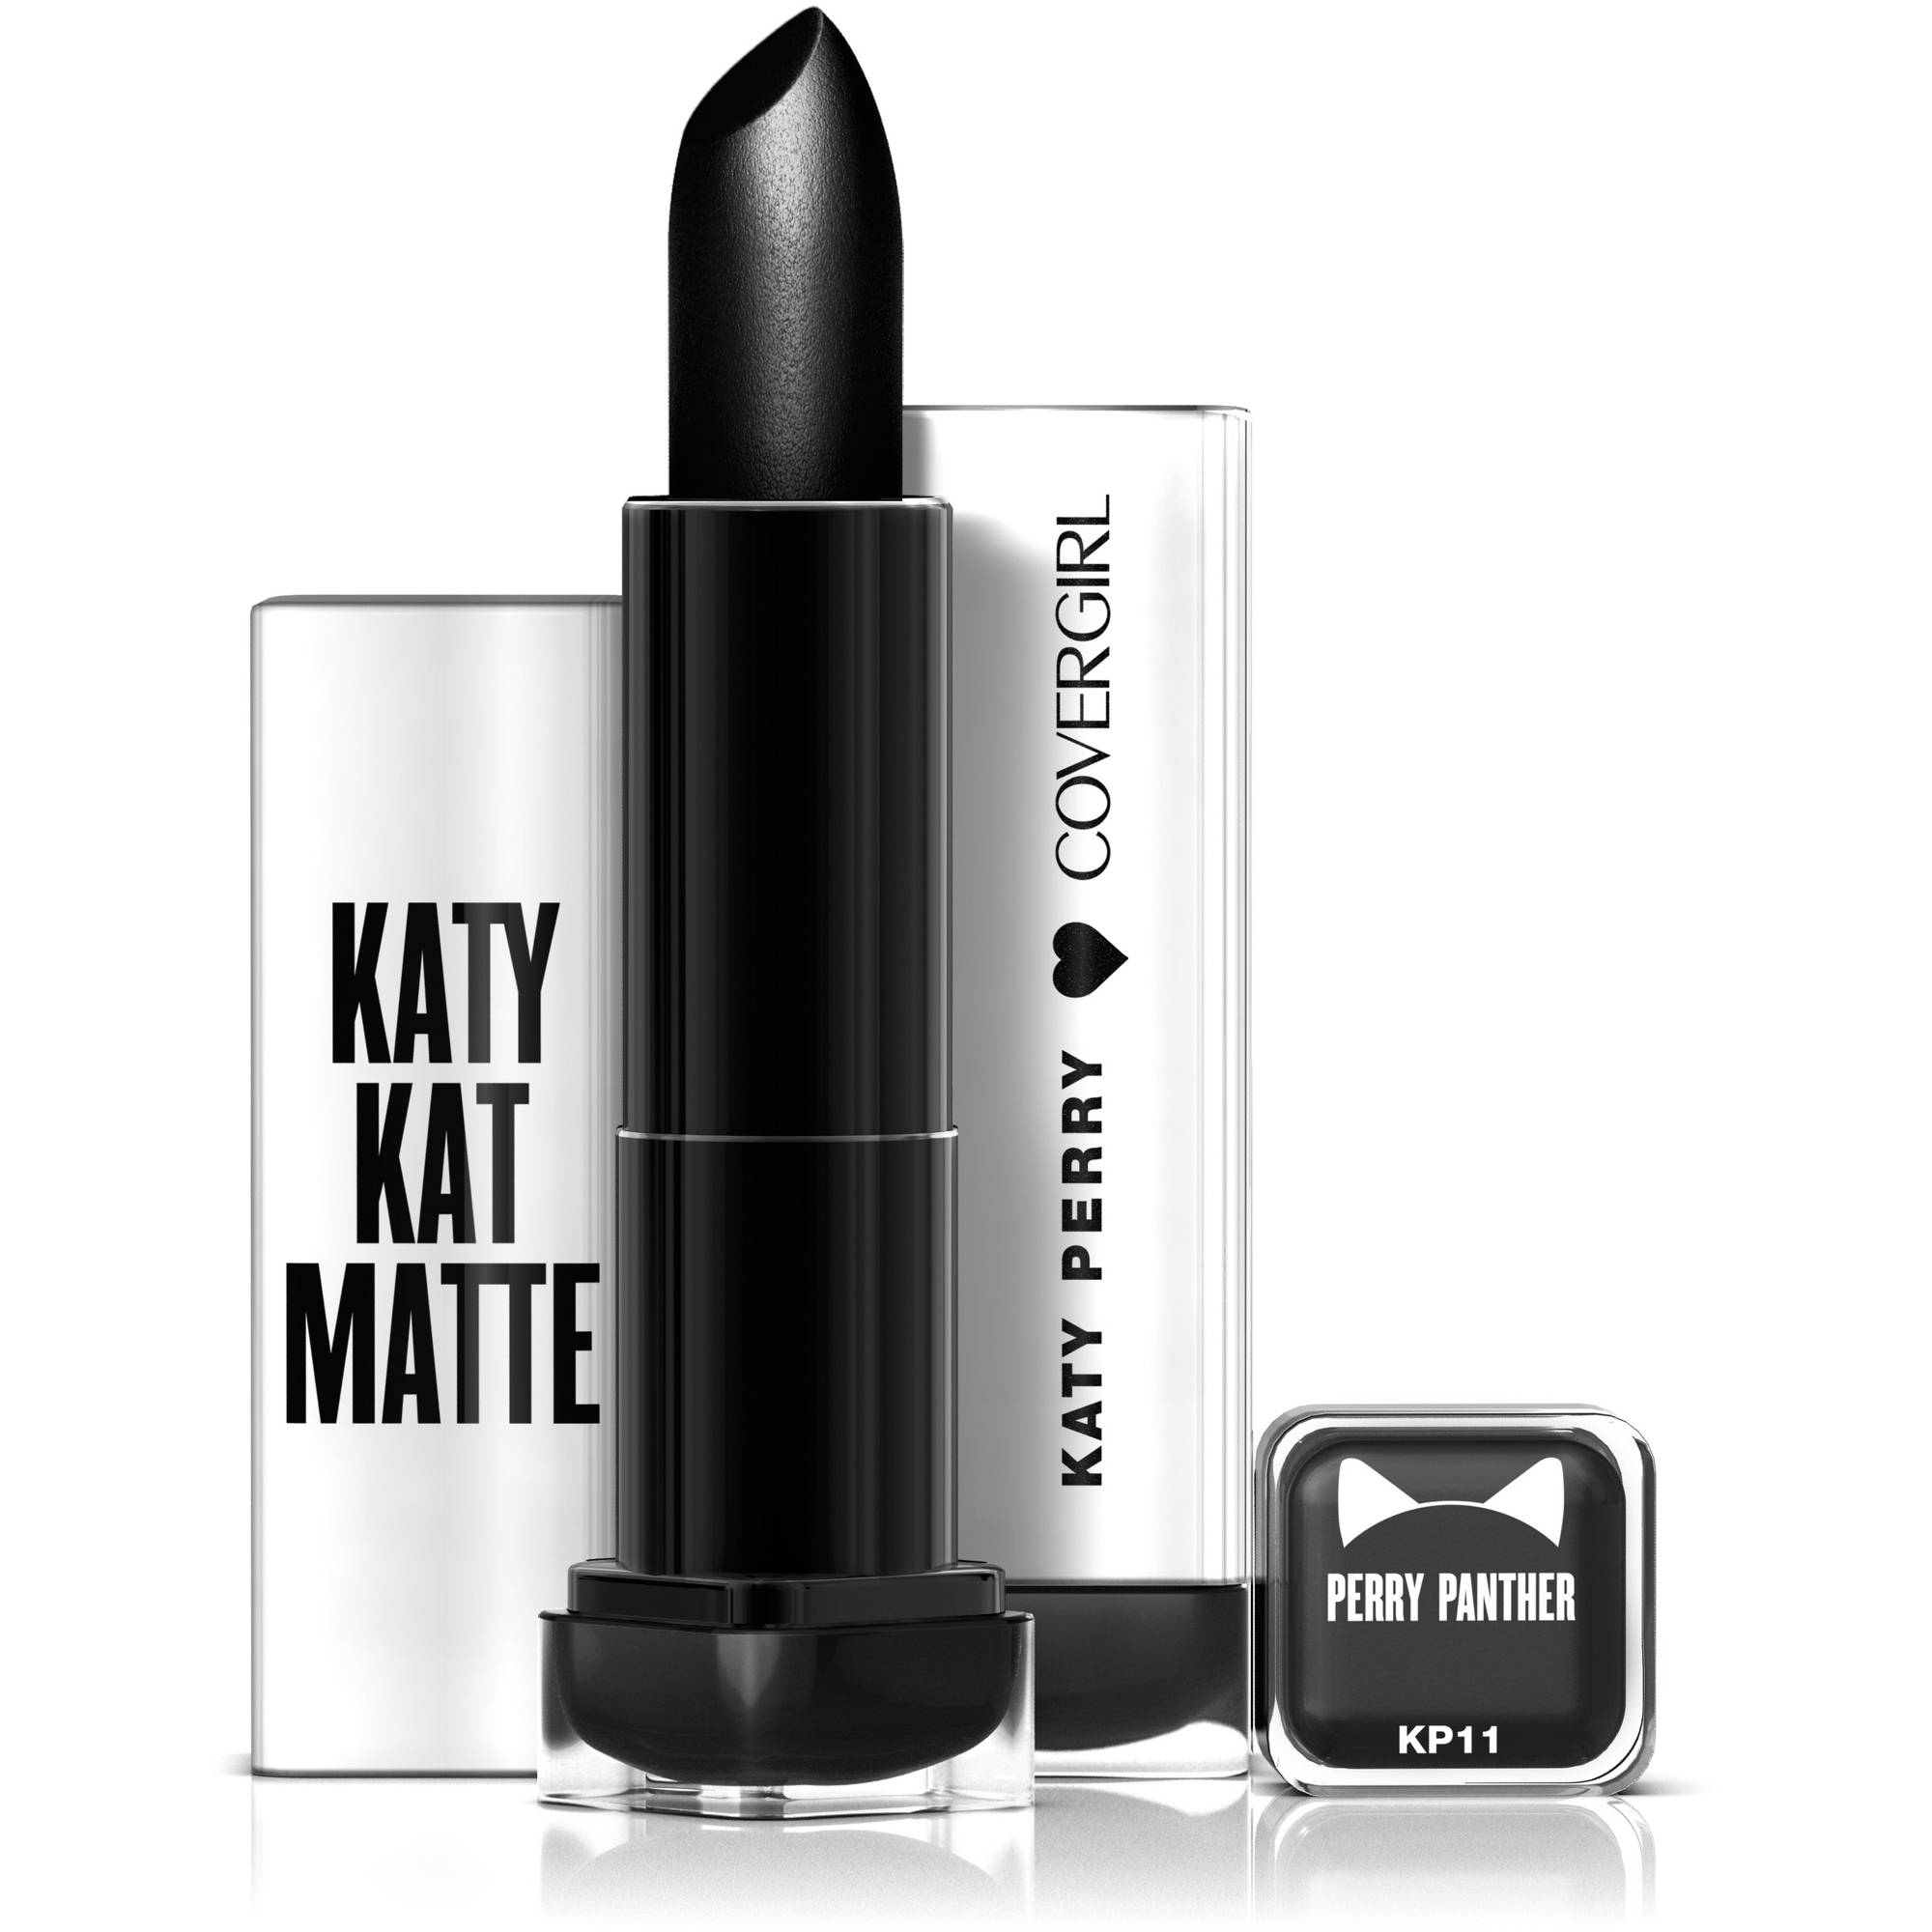 COVERGIRL Katy Kat Matte Lipstick Perry Panther, .12 oz created by Katy Perry